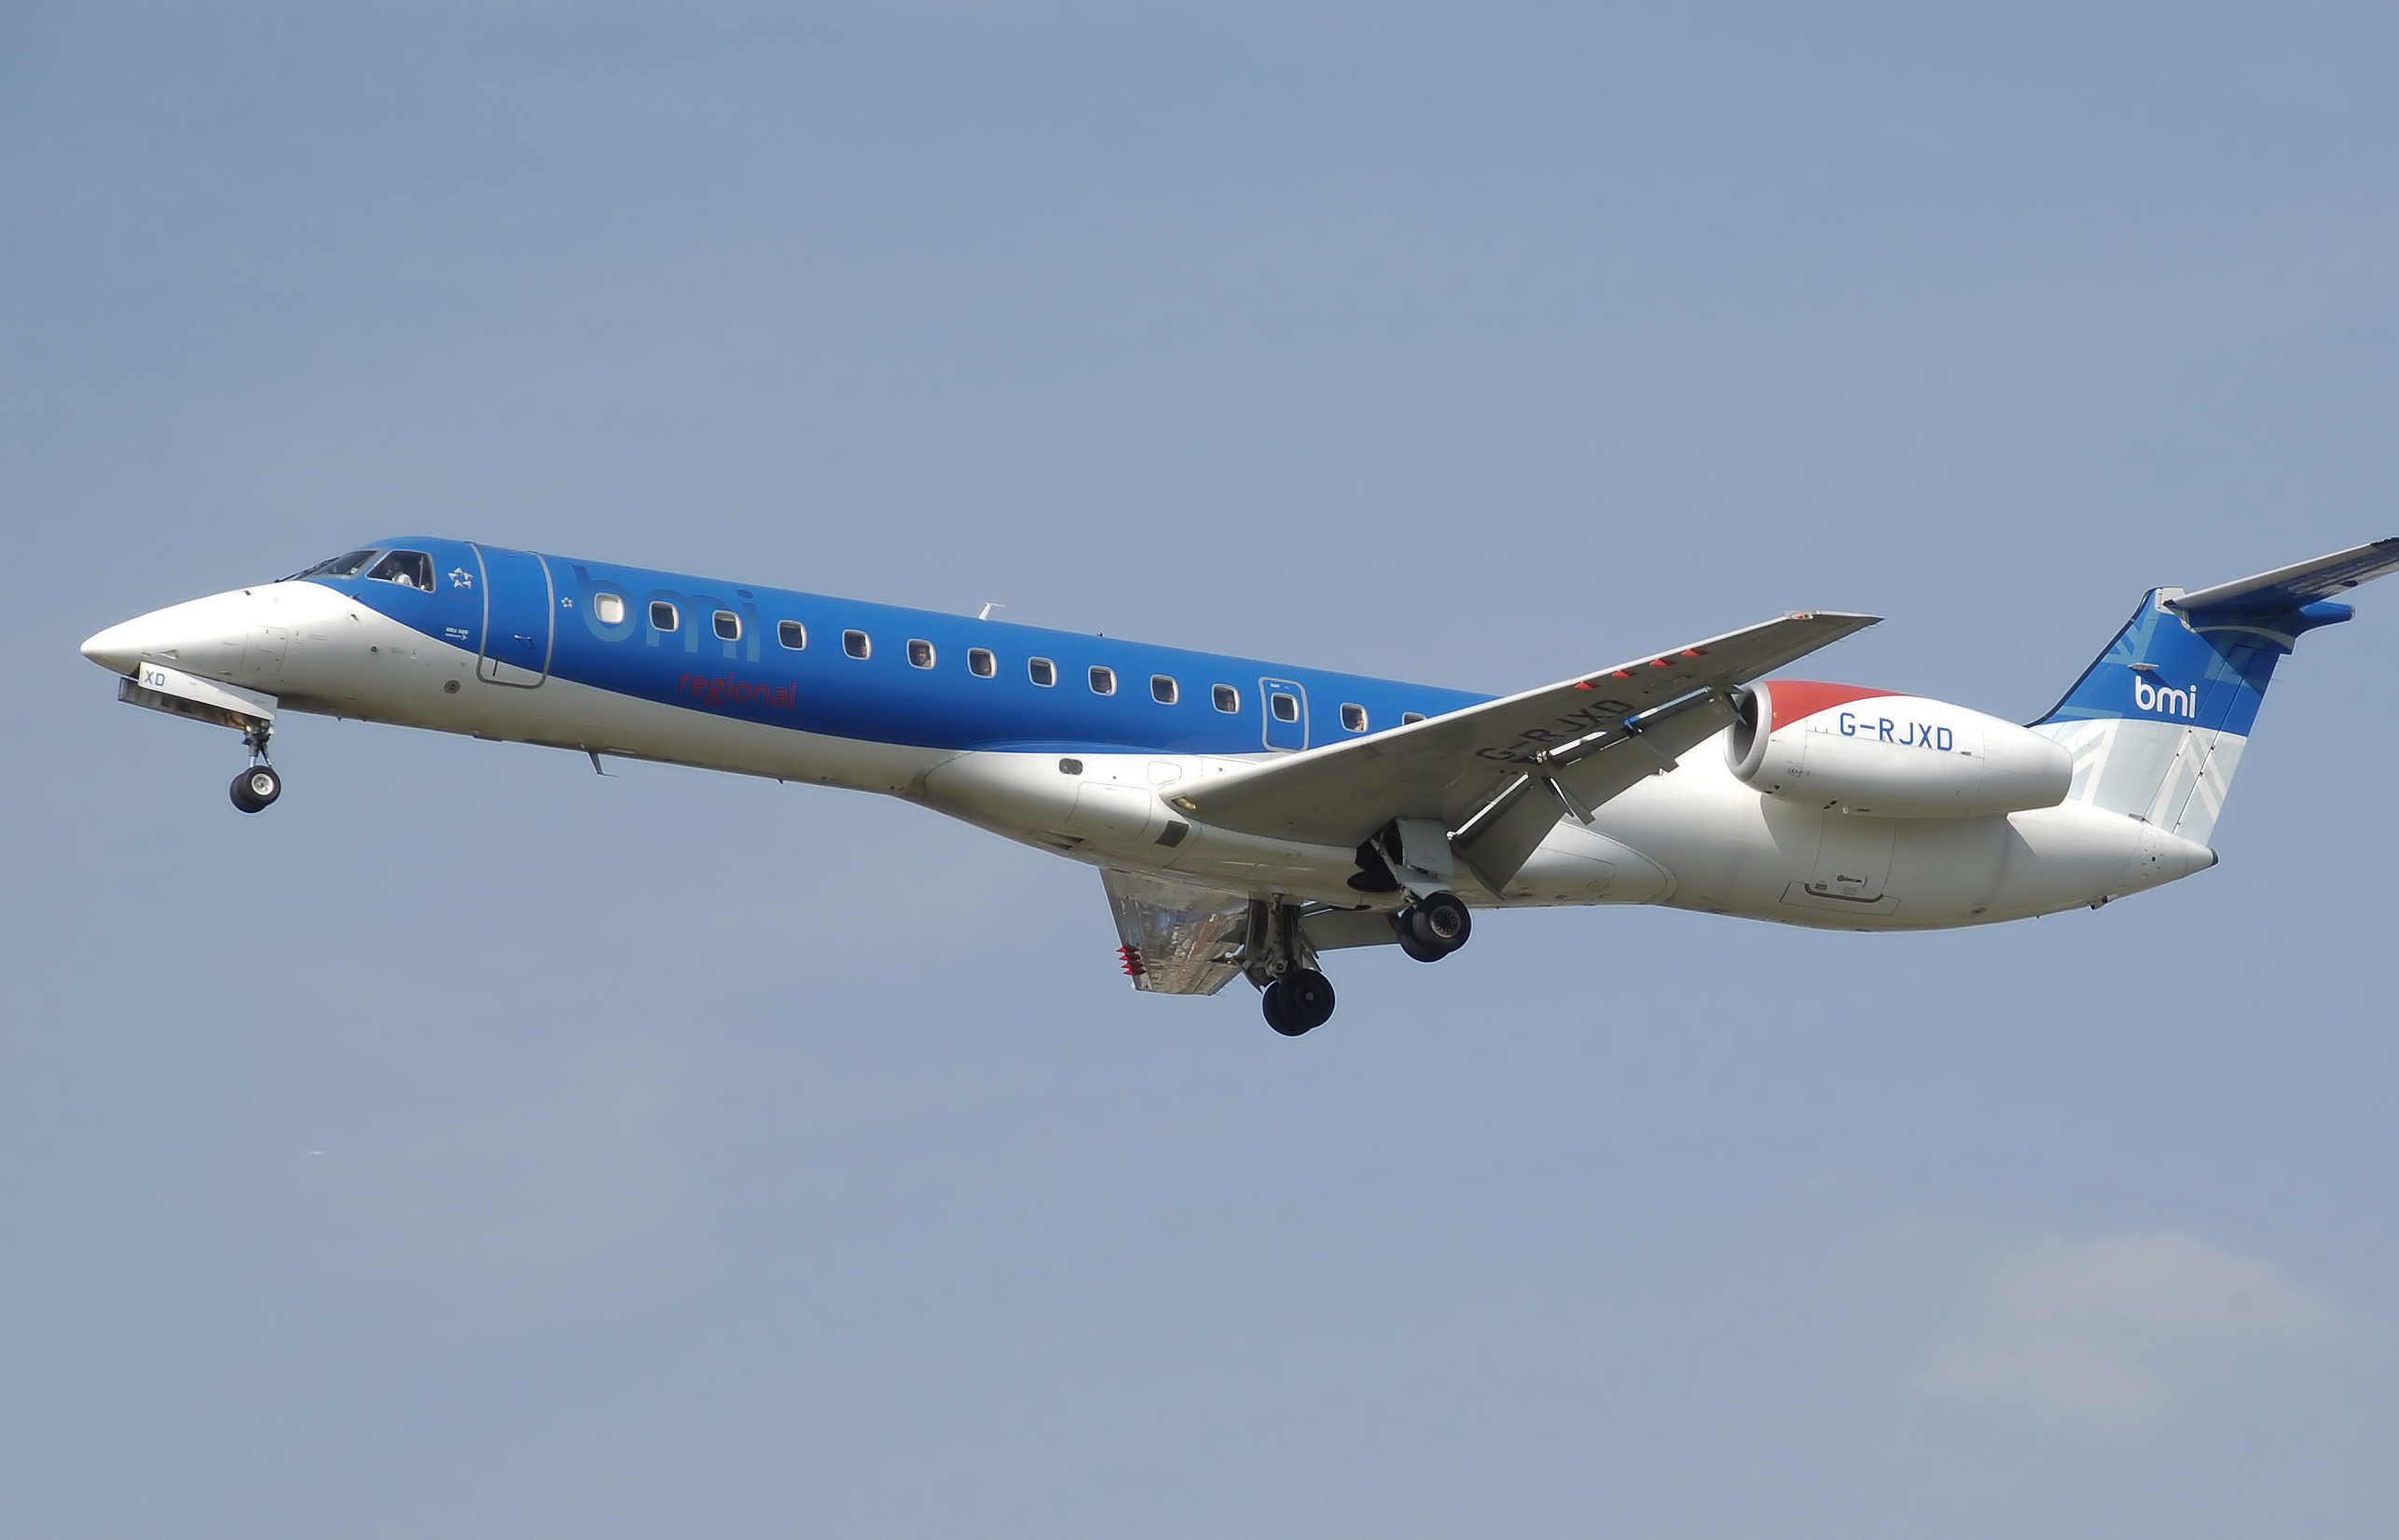 Possible delays at Bristol Airport after aeroplane leaves the runway